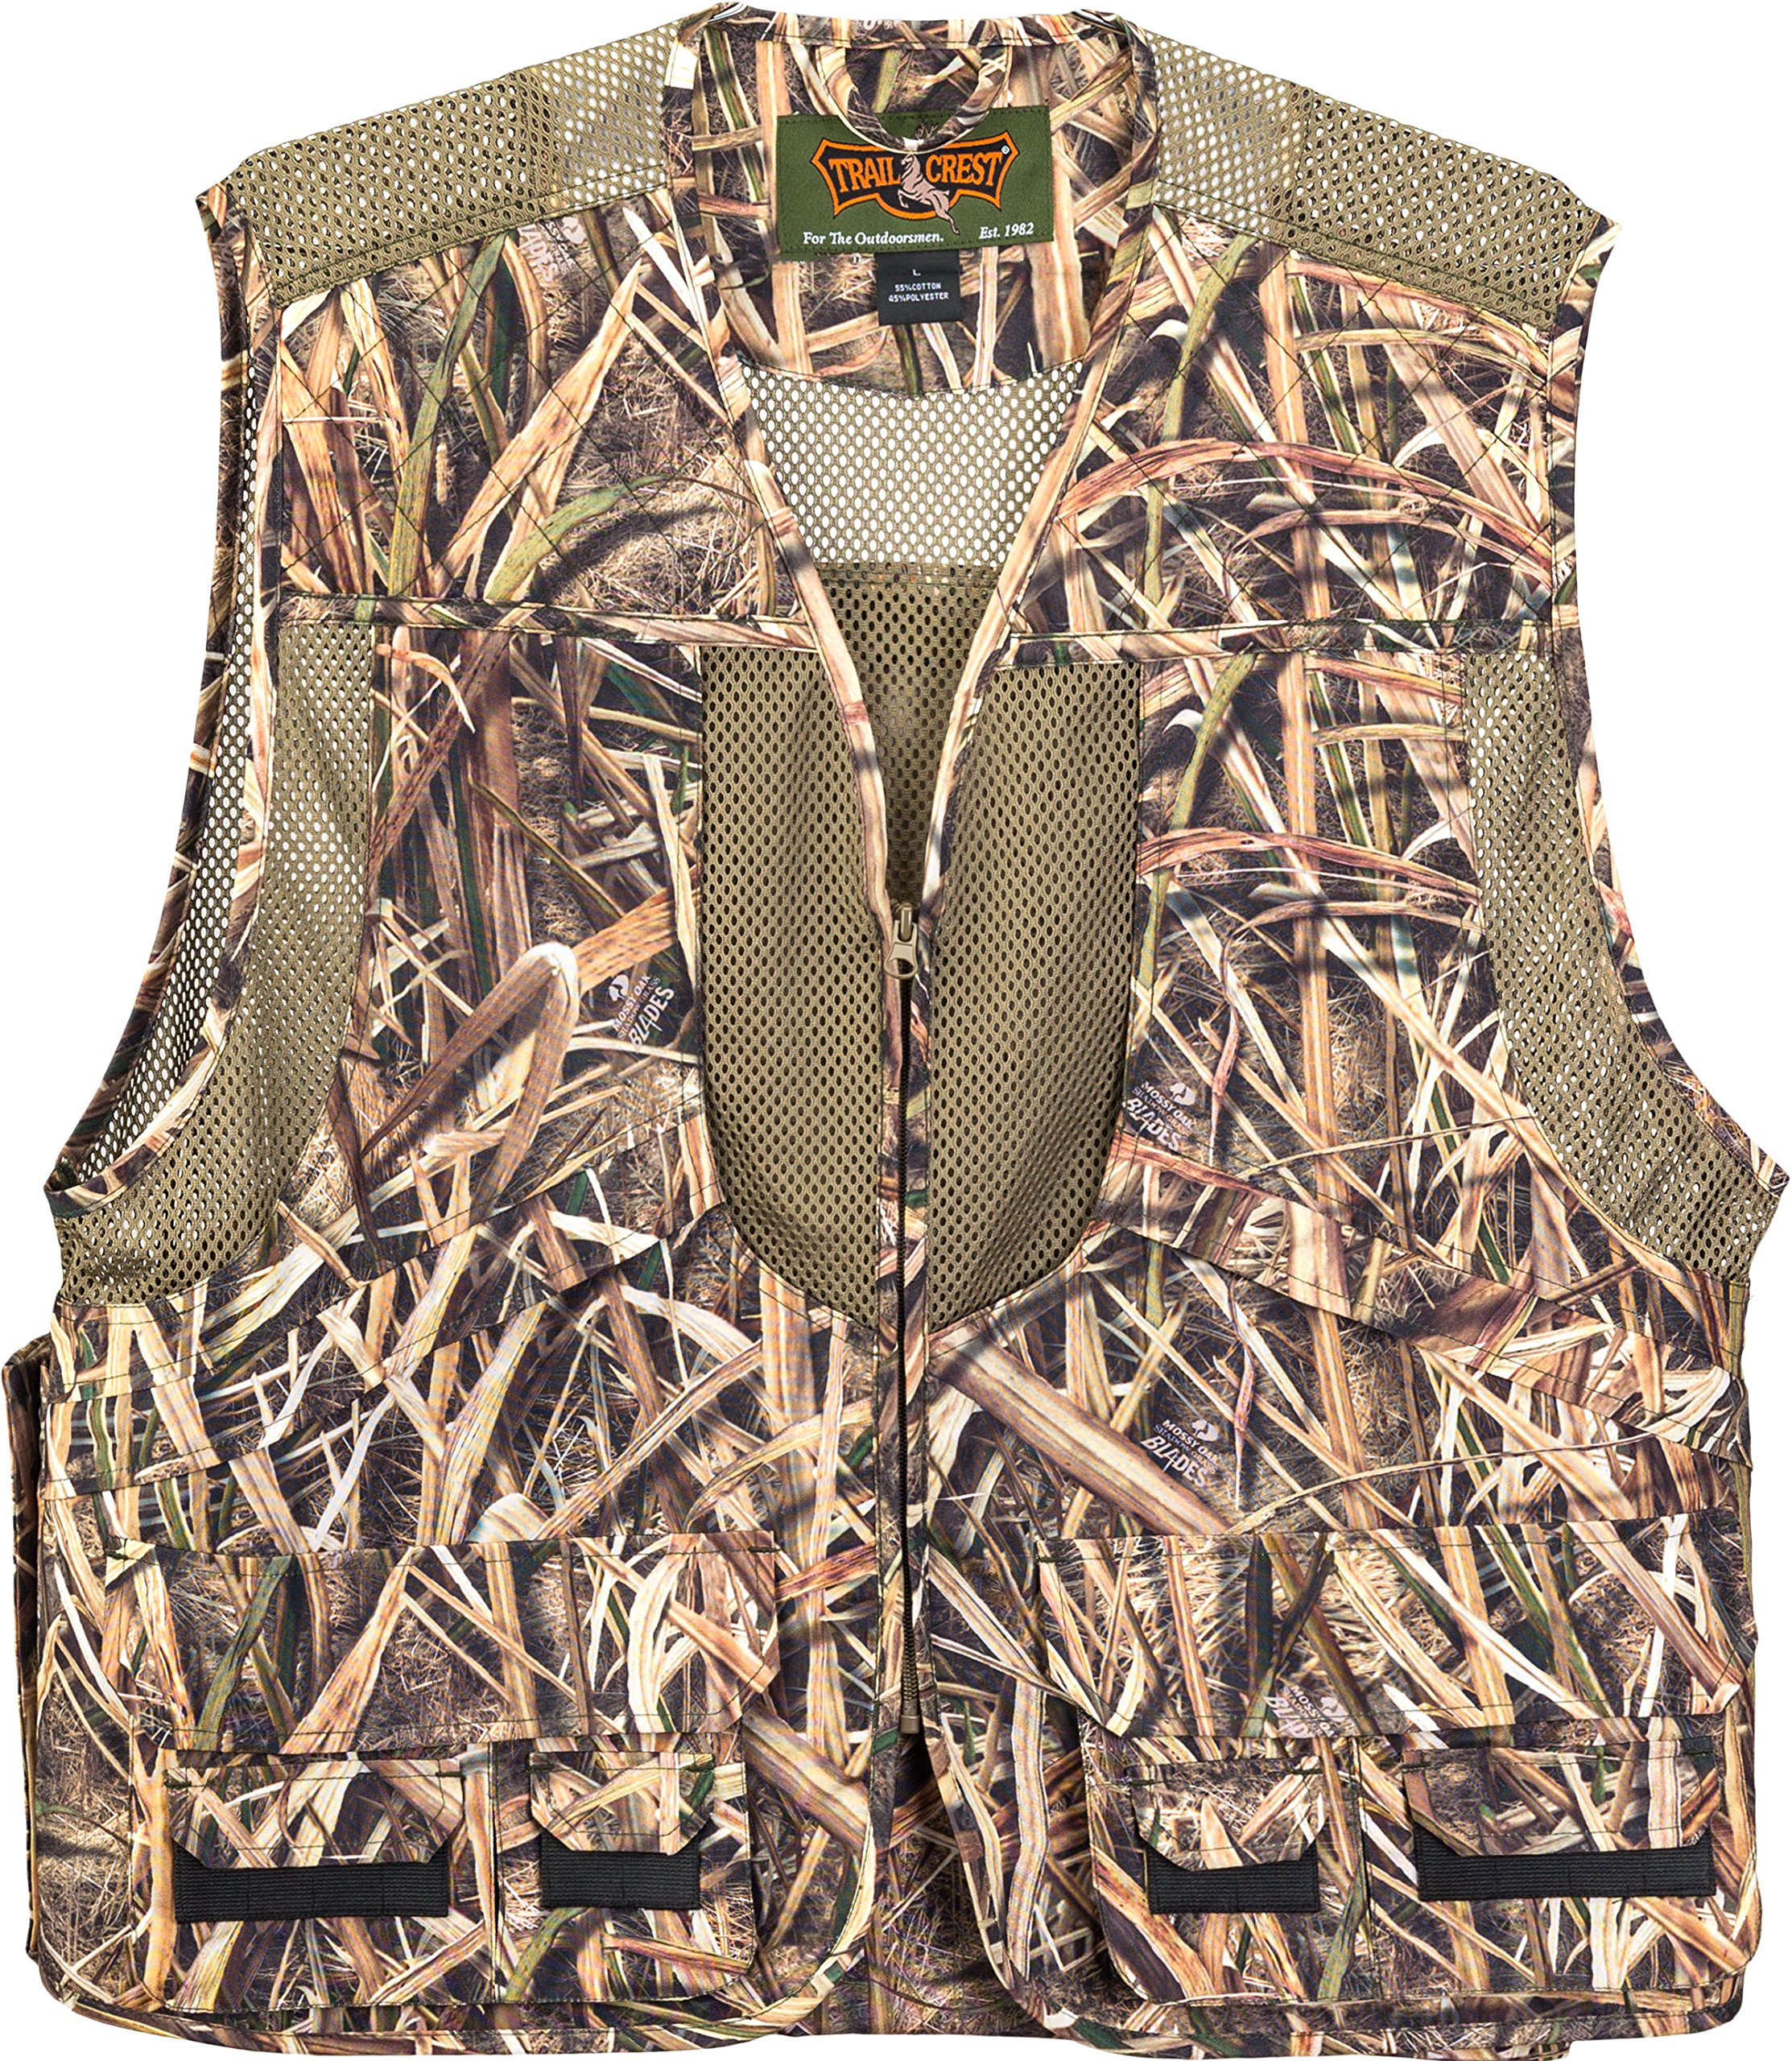 TrailCrest Kids Mossy Oak Deluxe Front Loader Hunting Vest, XL, Shadow Grass